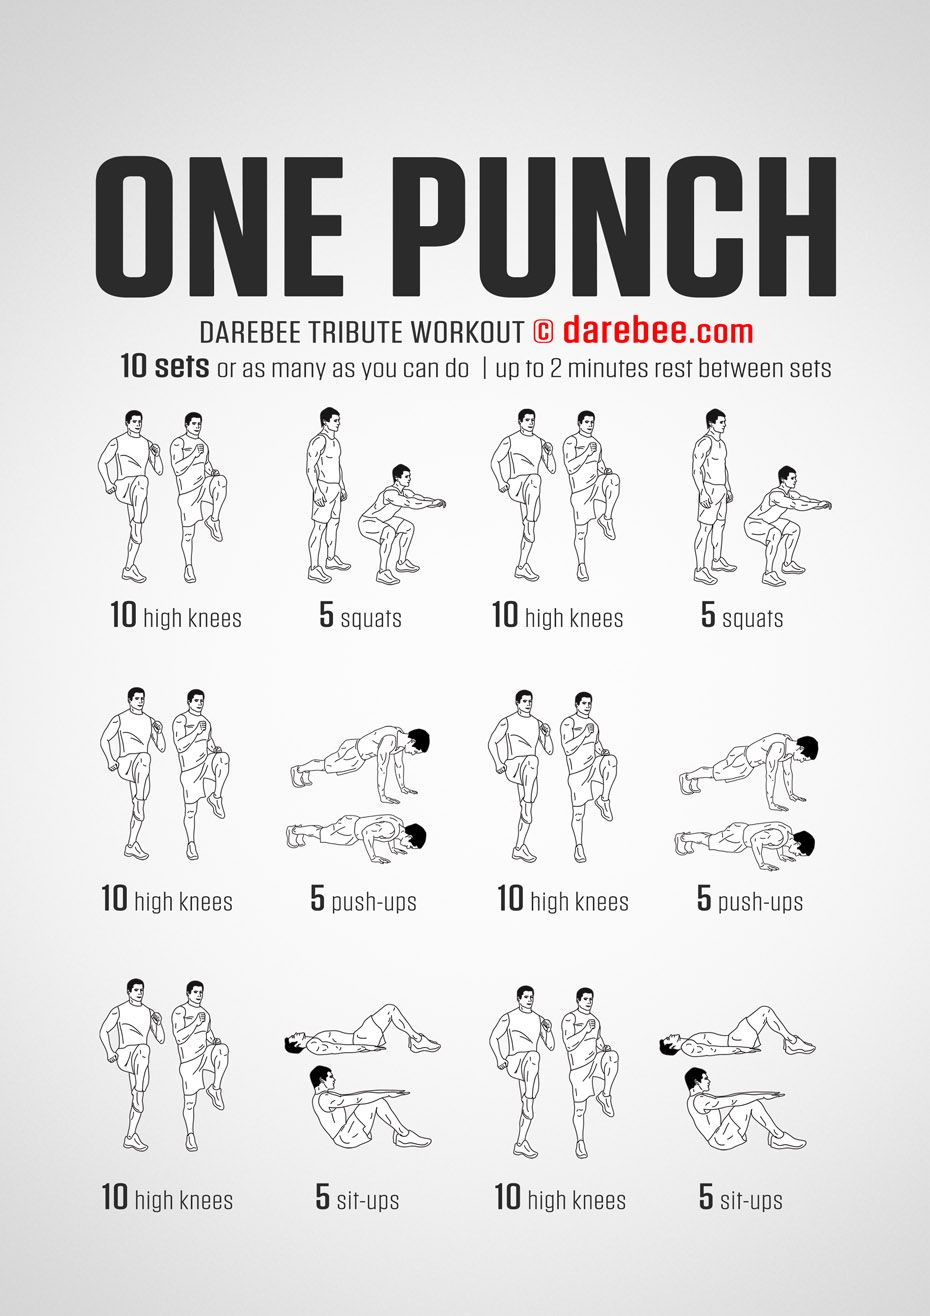 Just For Women | One punch man workout, Superhero workout ...